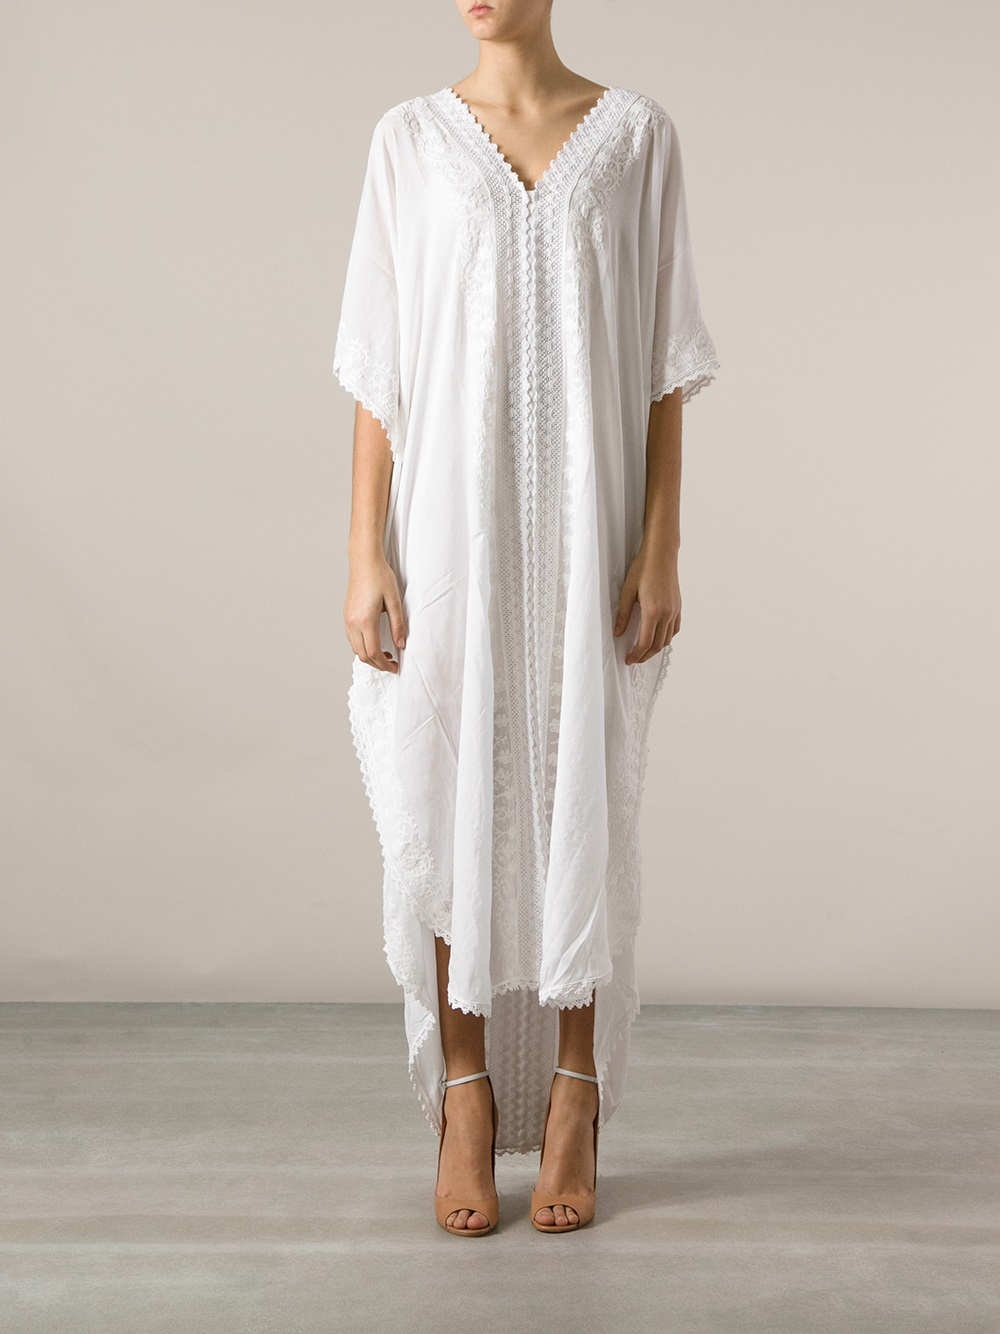 Tunic Dresses Enhance Many Body Types Some lovely warmer weather option for dressing are tunic dresses. They are one of the most functional wardrobe pieces you can have.